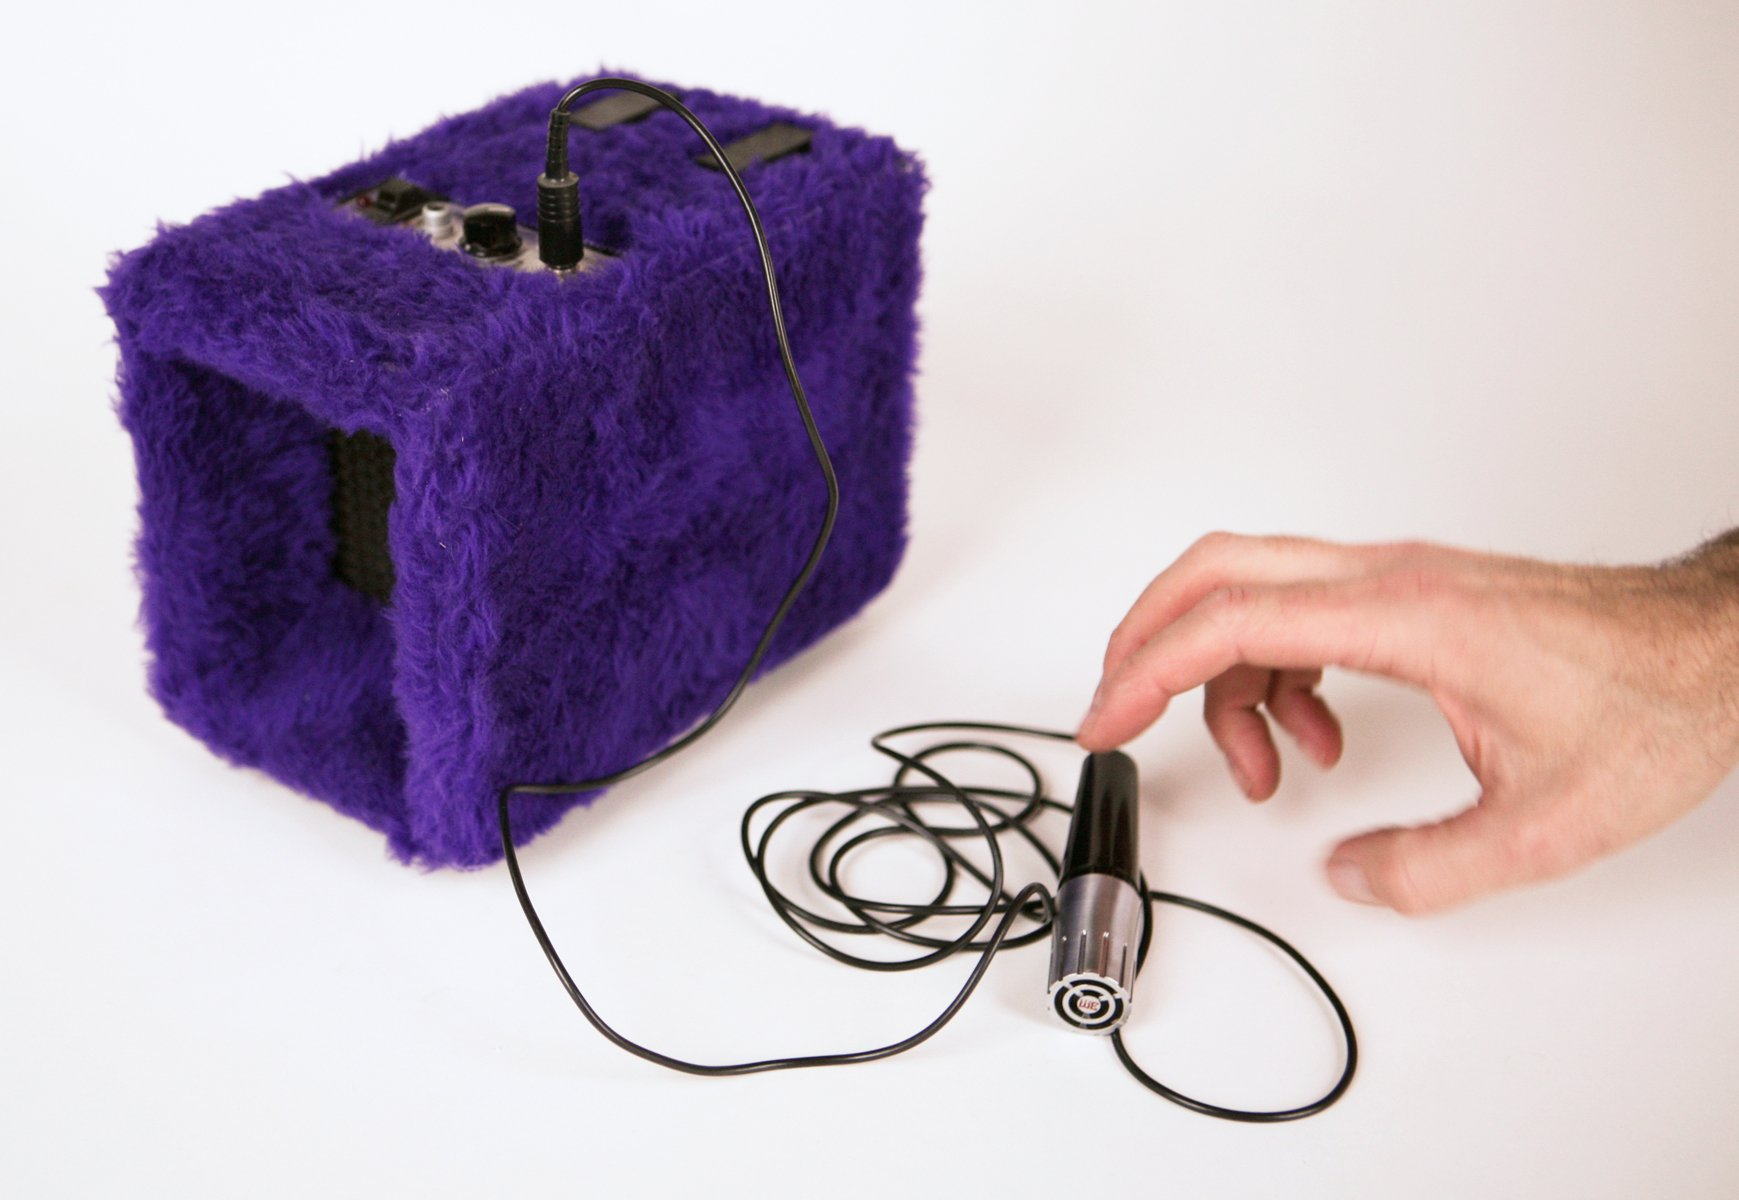 A hand reaches for a microphone plugged into a purple fur covered box device.